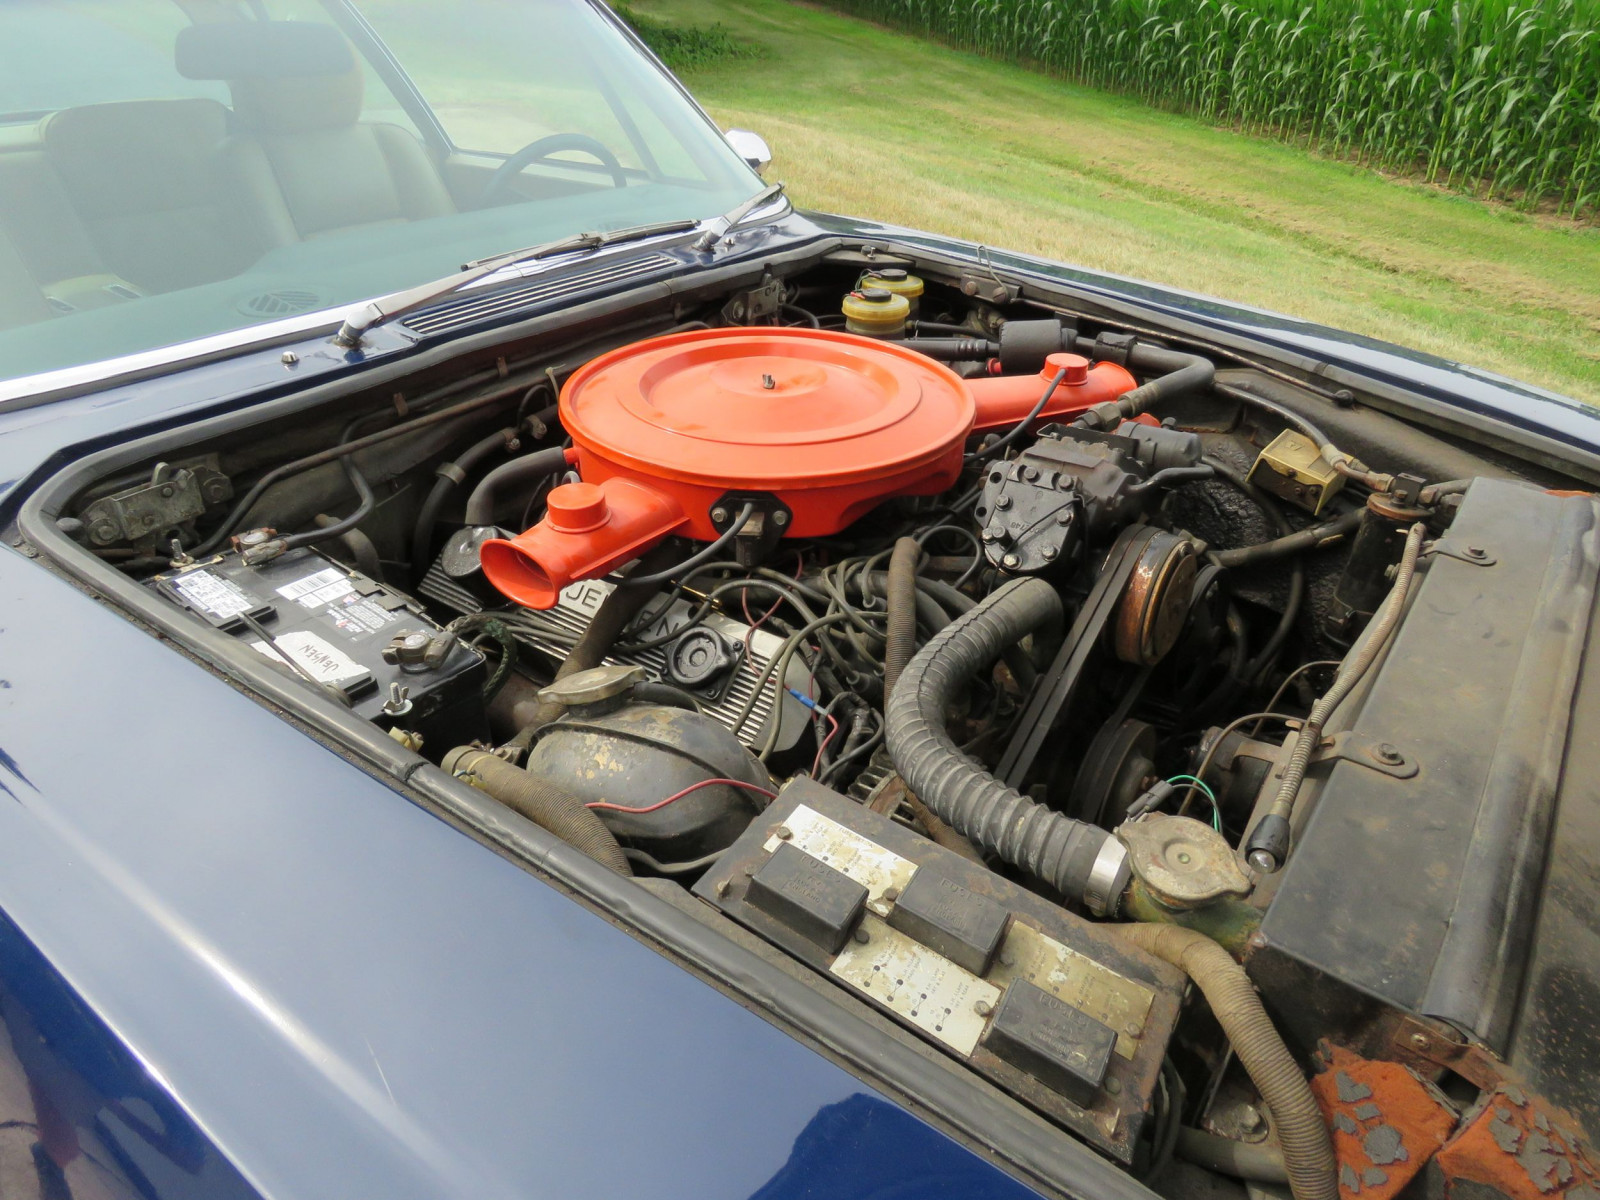 1973 Jensen Interceptor III Coupe - Image 17